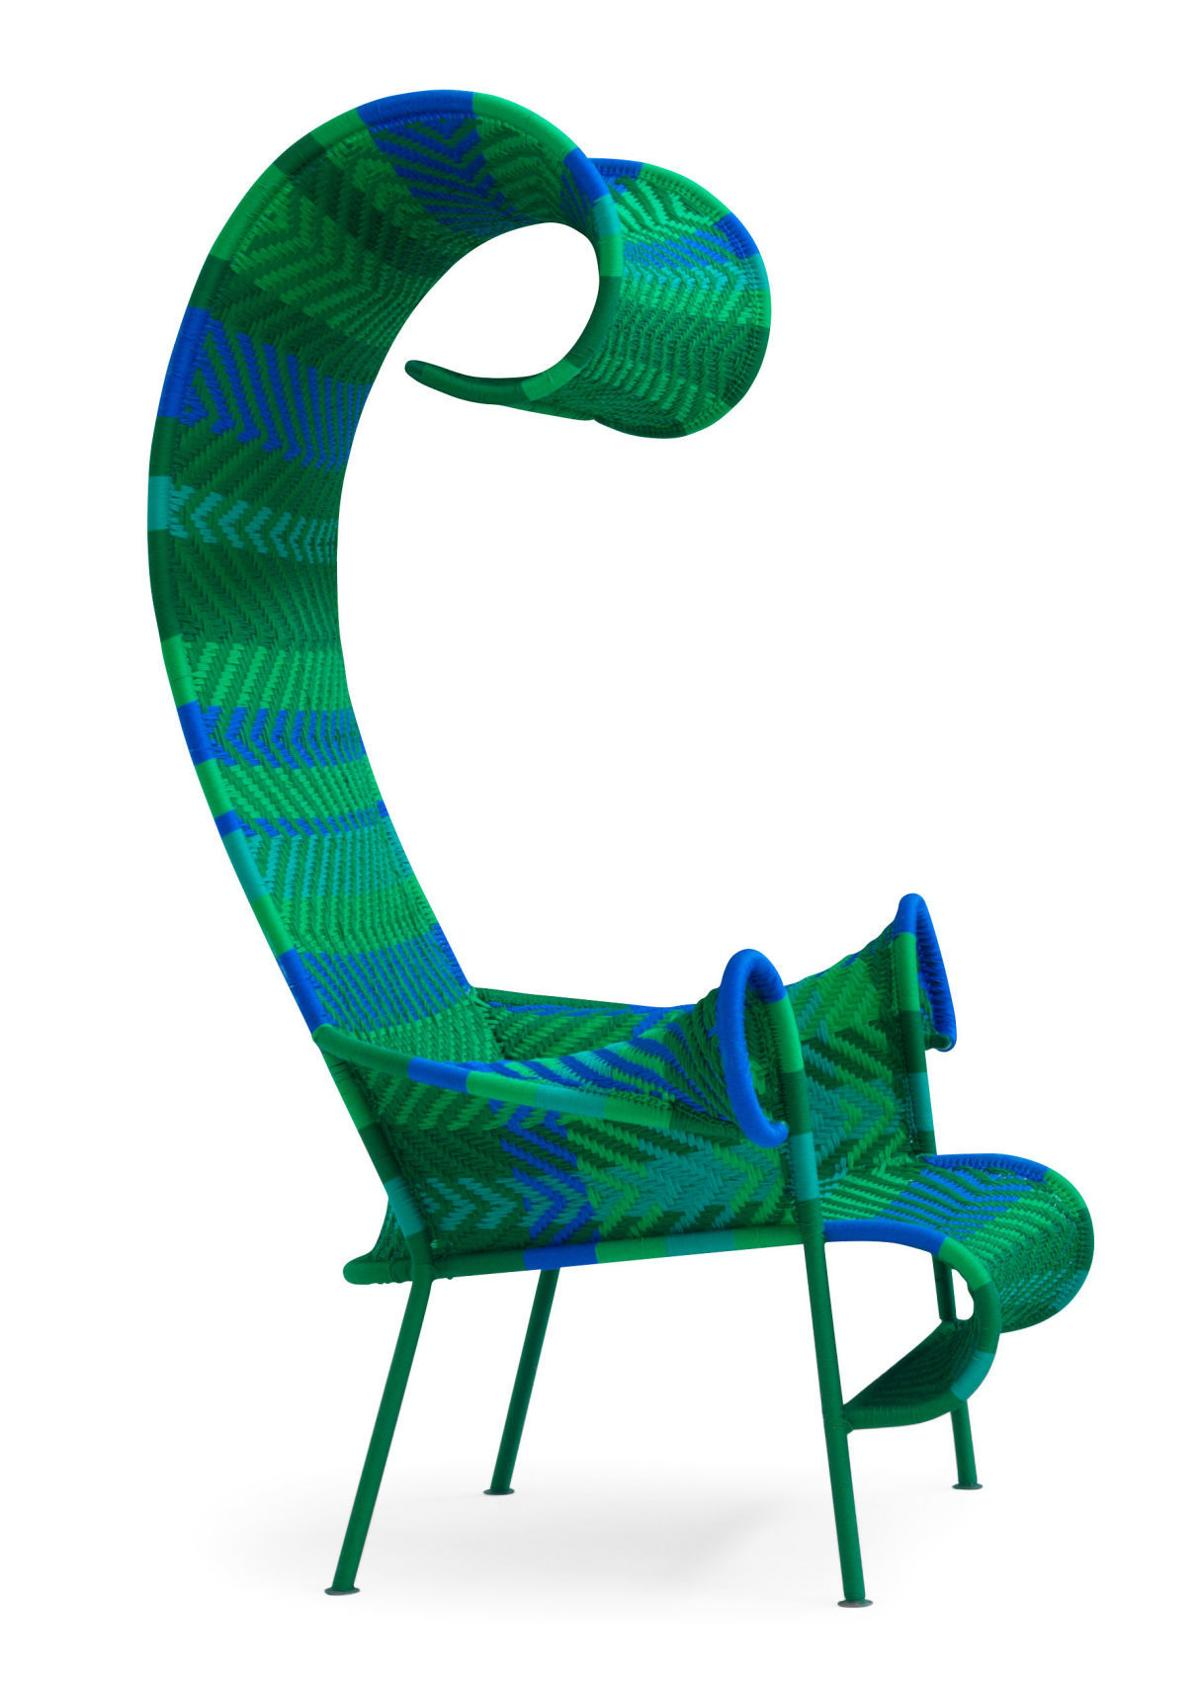 M'Afrique's Shadowy armchair